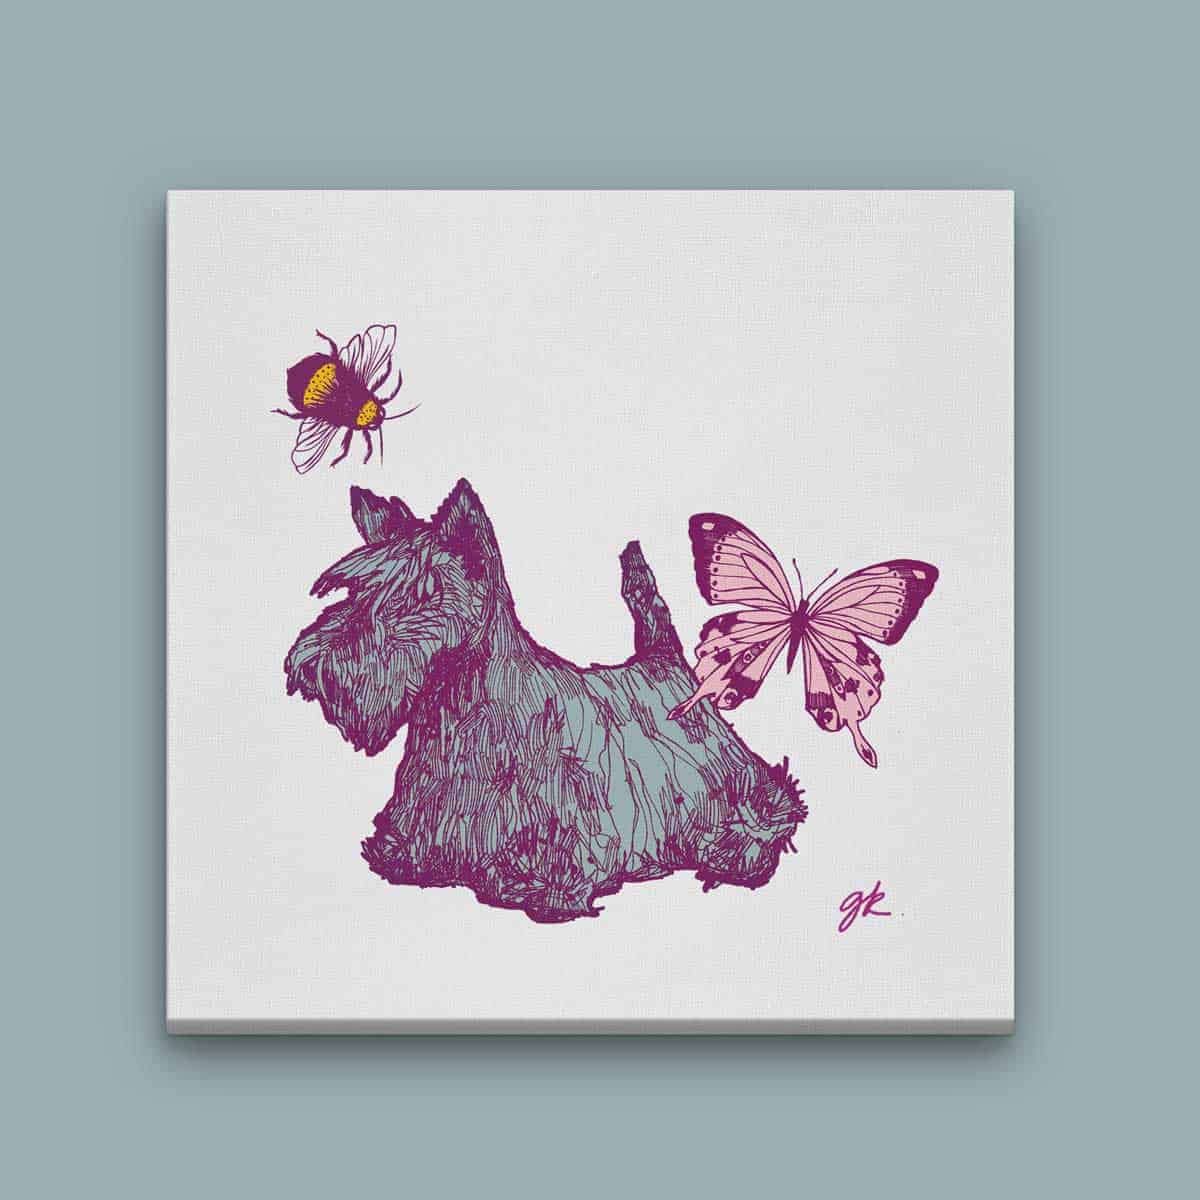 Gillian Kyle Scottish Canvas Prints Art Gallery, Bonnie Wee Scottie Scottish Terrier and Bee Canvas Print